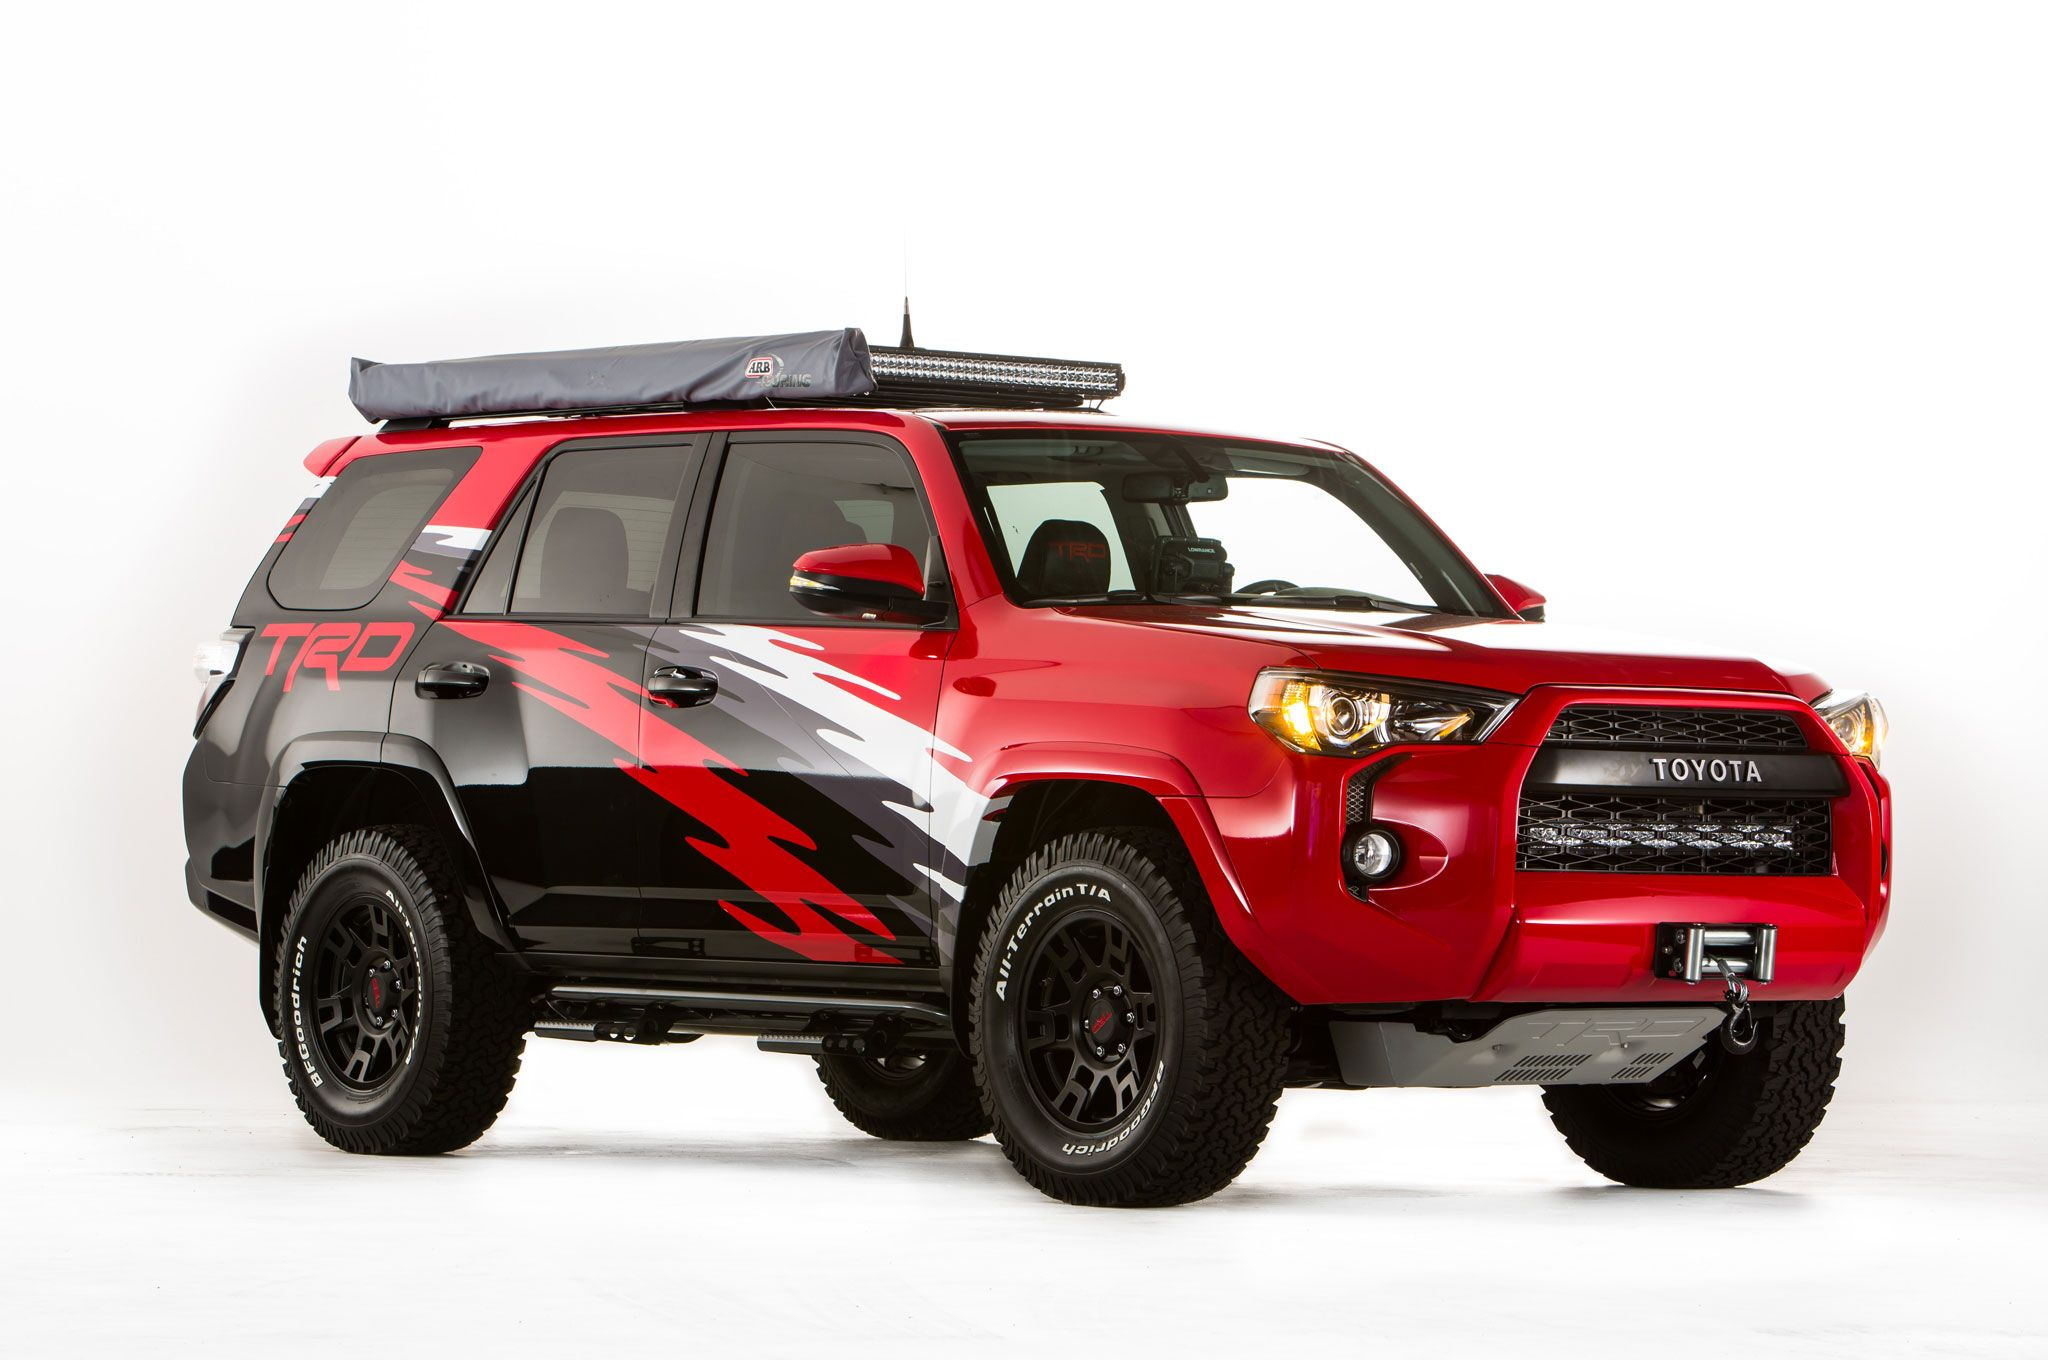 2017 4runner trd pro page 2 toyota 4runner forum largest 4runner - 2015 Toyota Trd Tacoma And Tundra Chase Trucks To Offer Baja 1000 Race Support